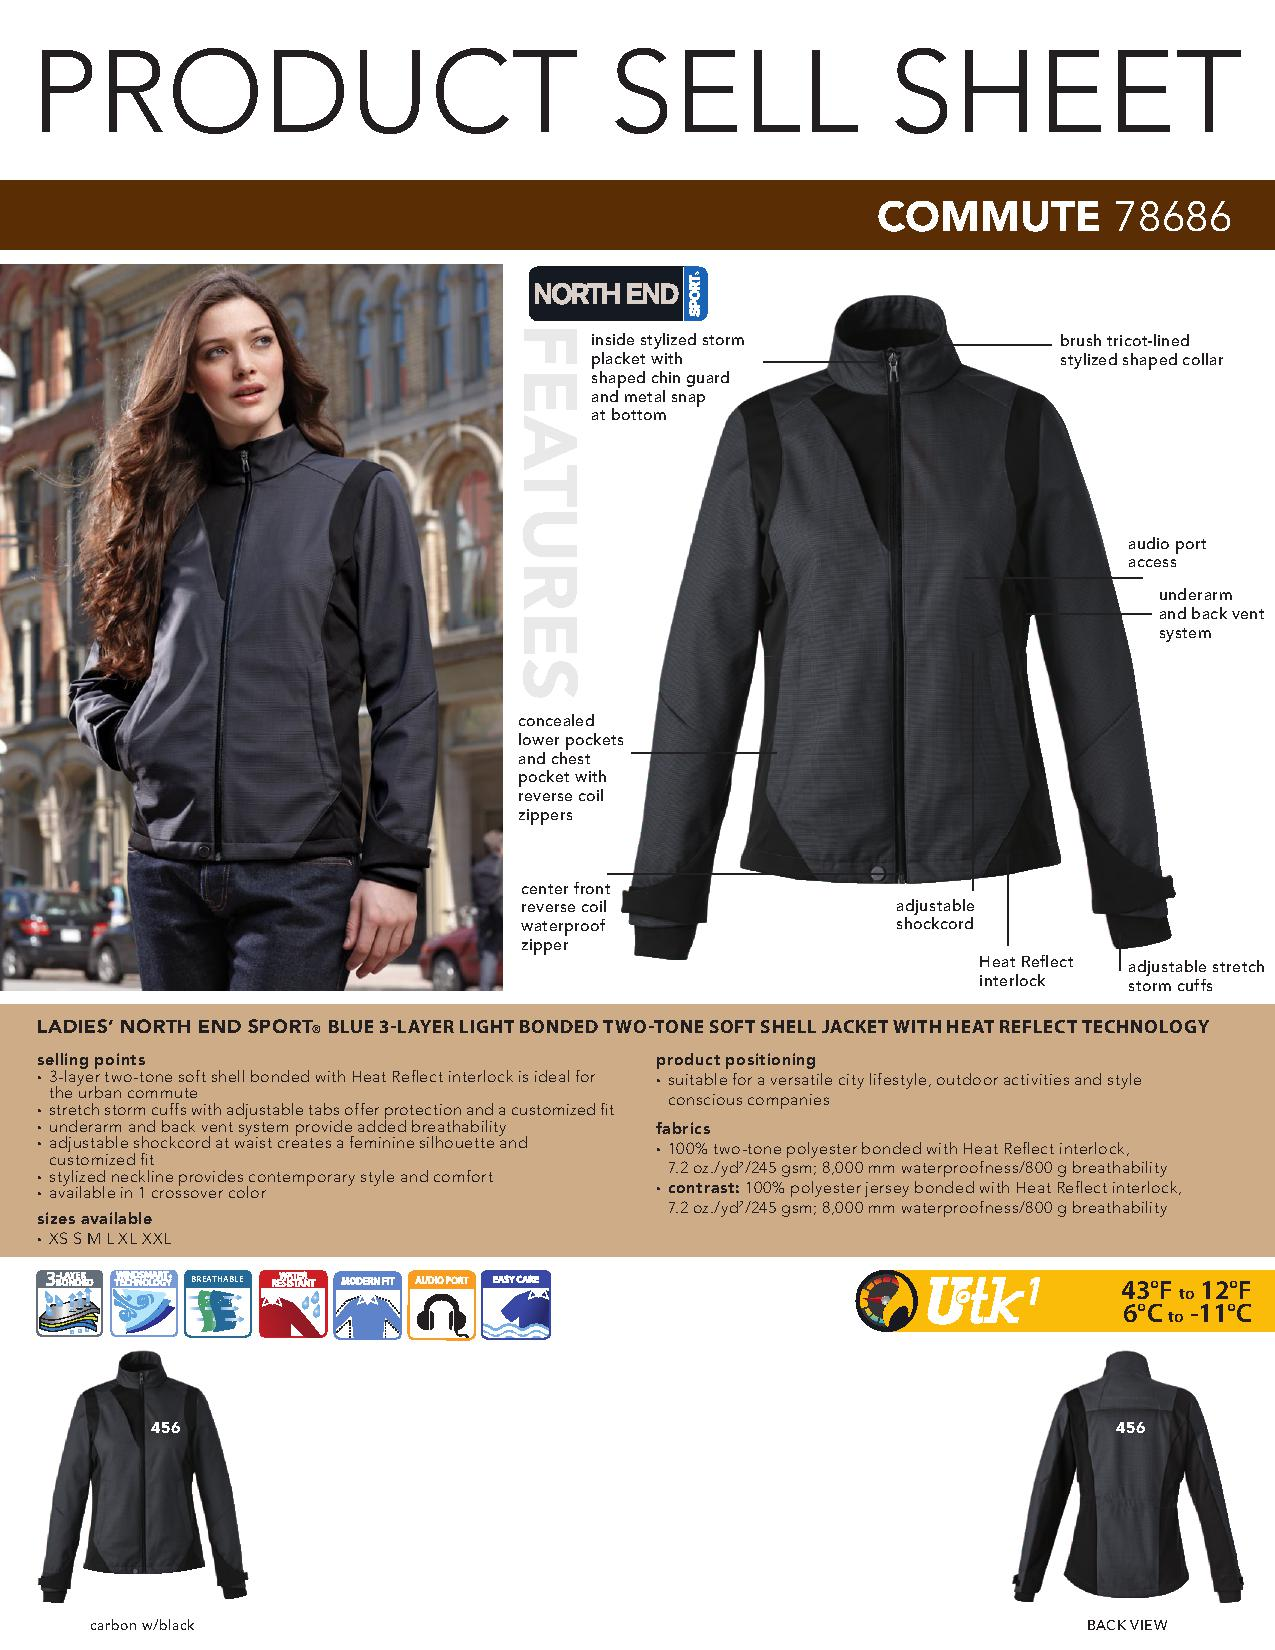 Ash City Light Bonded Jackets 78686 - Commute Ladies' 3-Layer Light Bonded Two-Tone Soft Shell Jacket With Heat Reflect Technolo